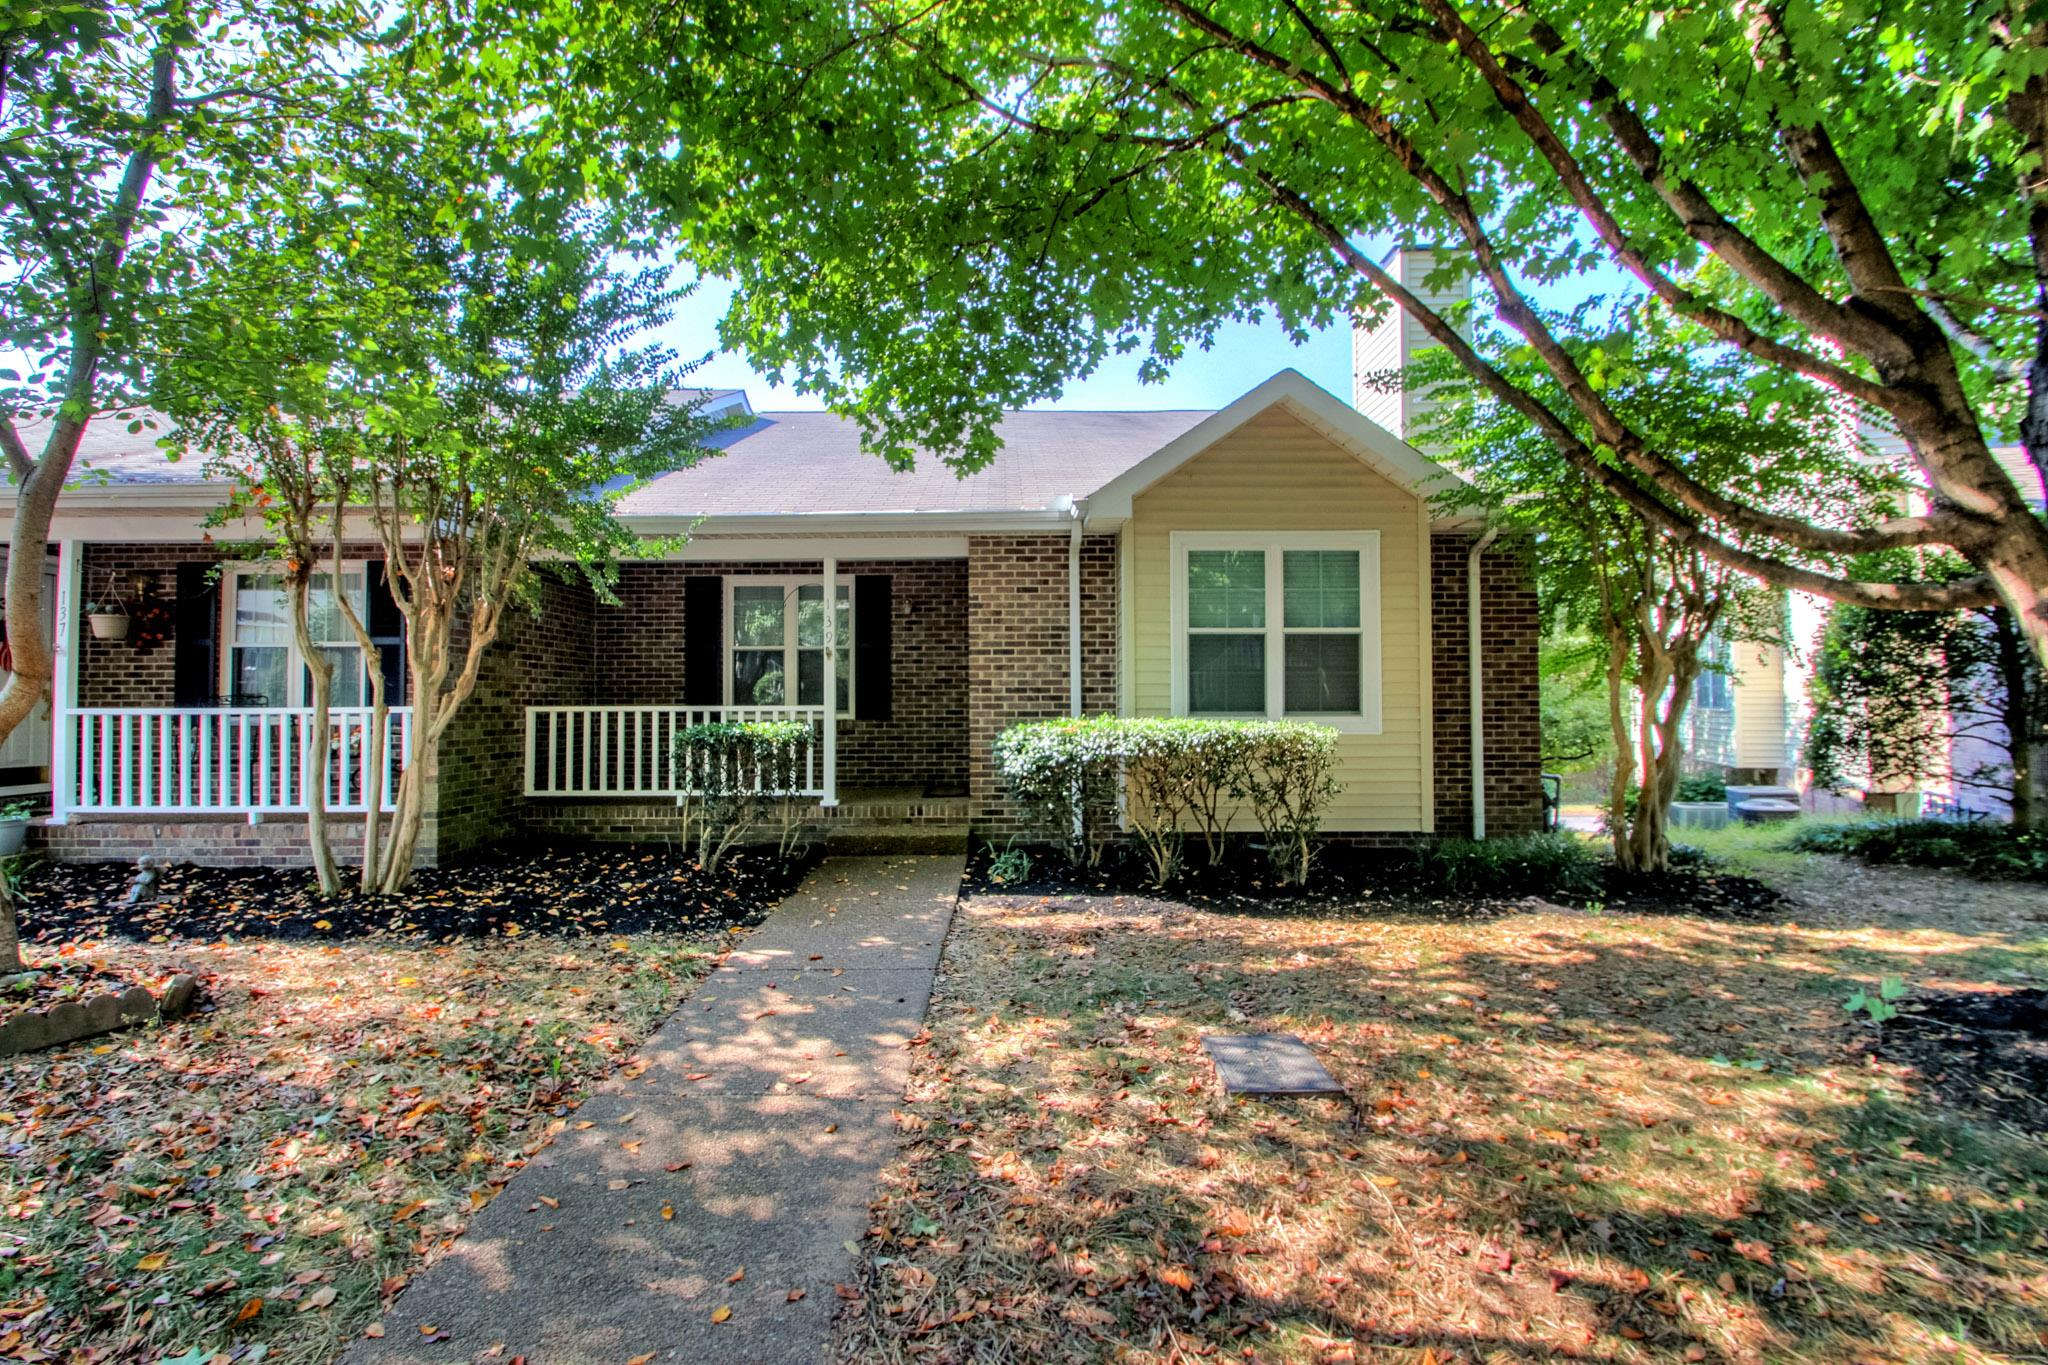 139 Pepper Ridge Cir, Nashville-Antioch in Davidson County County, TN 37013 Home for Sale